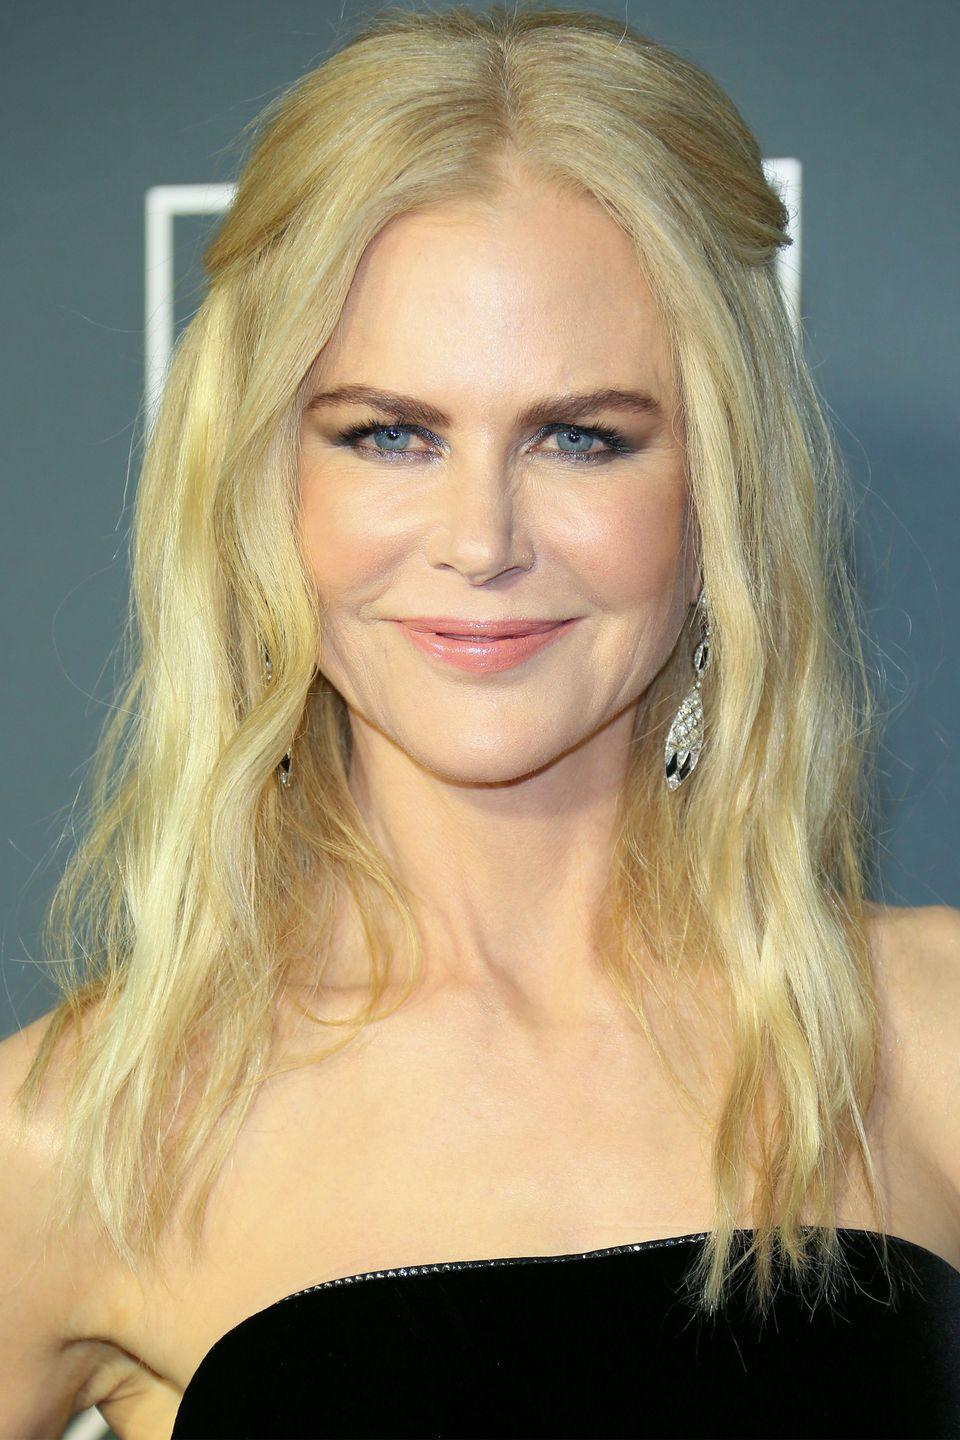 "<p>The actress <a href=""https://www.cbsnews.com/pictures/actors-who-dropped-out-of-school/2/"" rel=""nofollow noopener"" target=""_blank"" data-ylk=""slk:dropped out"" class=""link rapid-noclick-resp"">dropped out</a> of school in Australia when she was 16 to pursue acting full time. </p>"